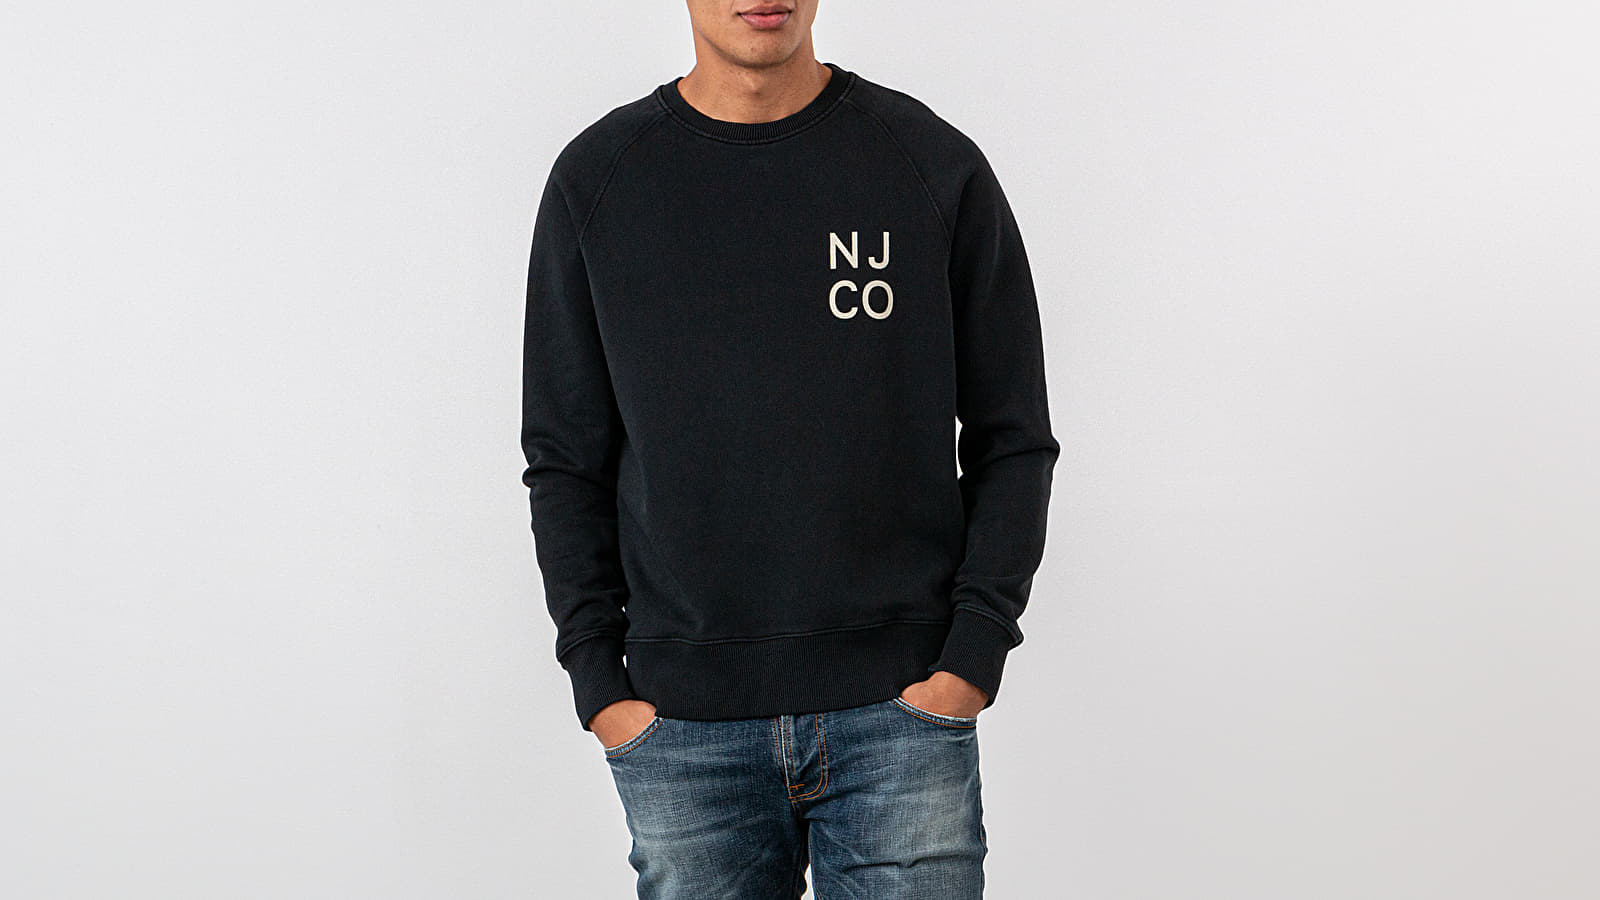 Hoodies and sweatshirts Nudie Jeans Melvin NJCO Crewneck Black